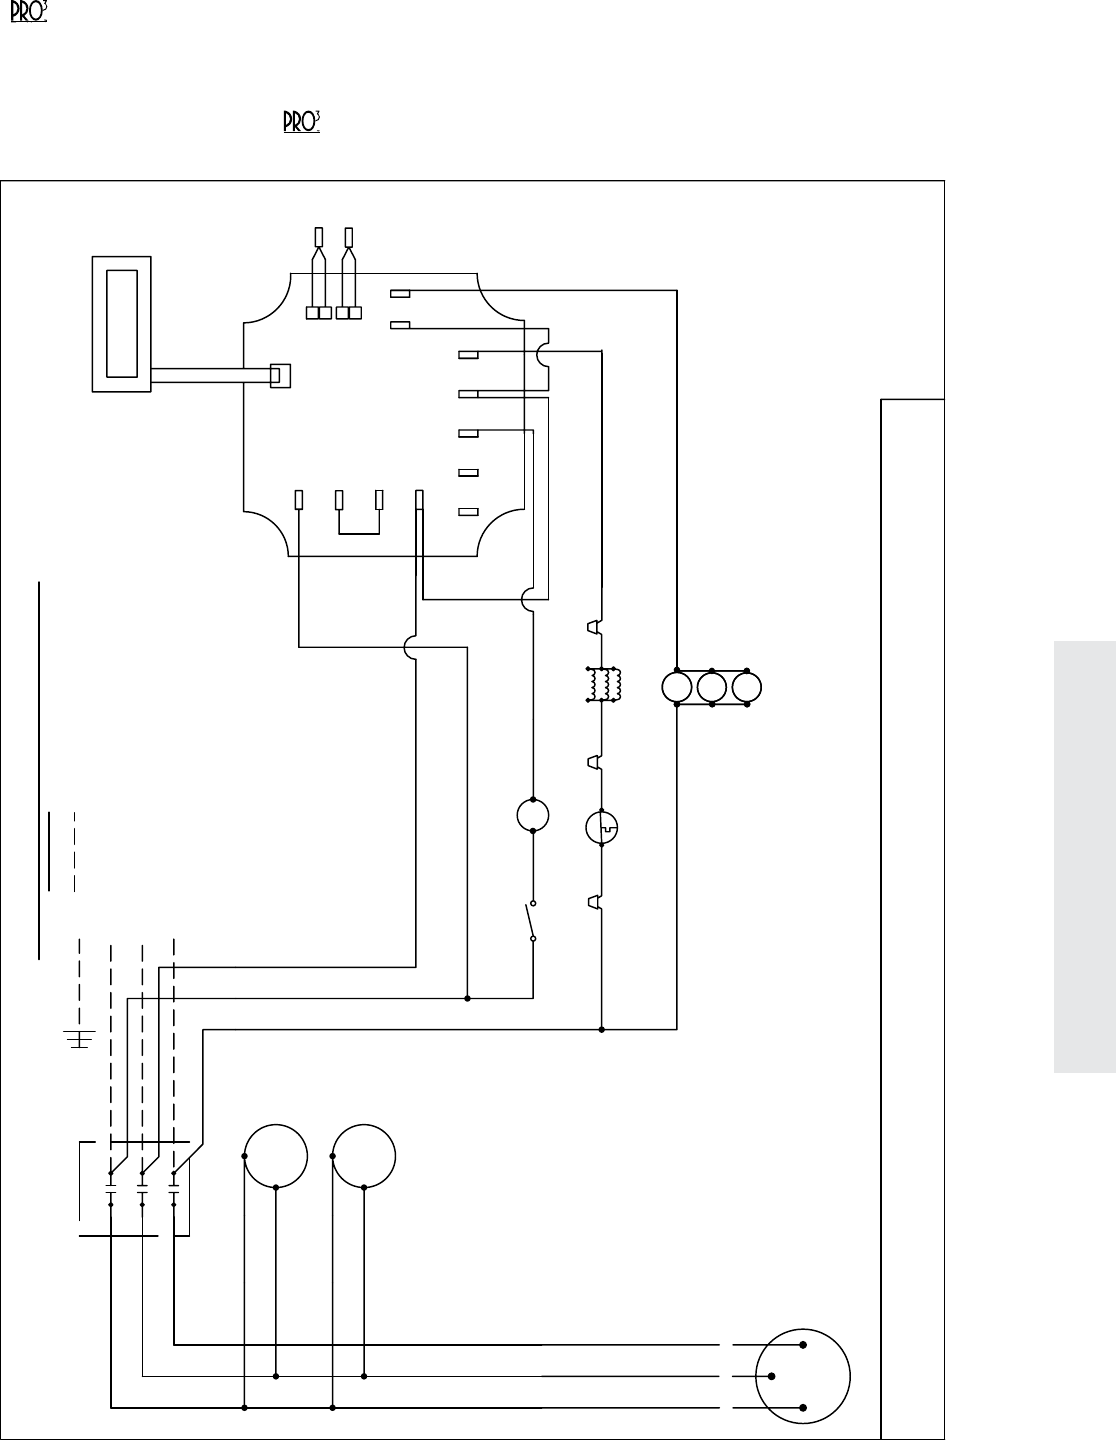 b8616a9a 7649 411a b648 d6245cba7e20 bg13 page 19 of heatcraft refrigeration products refrigerator h im 82b heatcraft wiring diagram at reclaimingppi.co